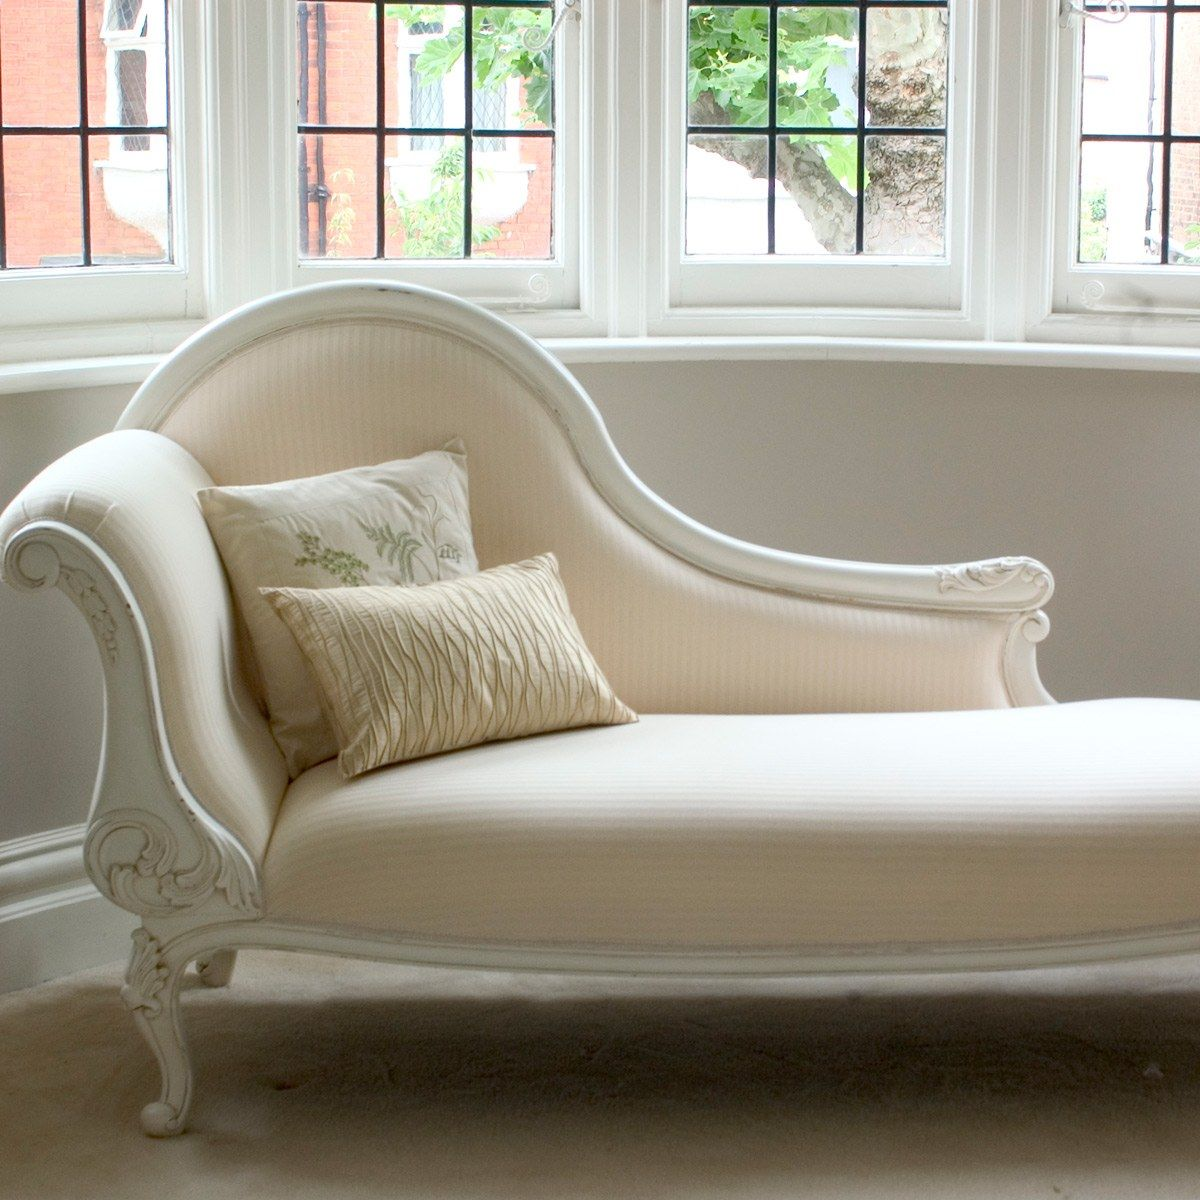 bedroom chair chaise leather dining chairs singapore classical white longue dream room